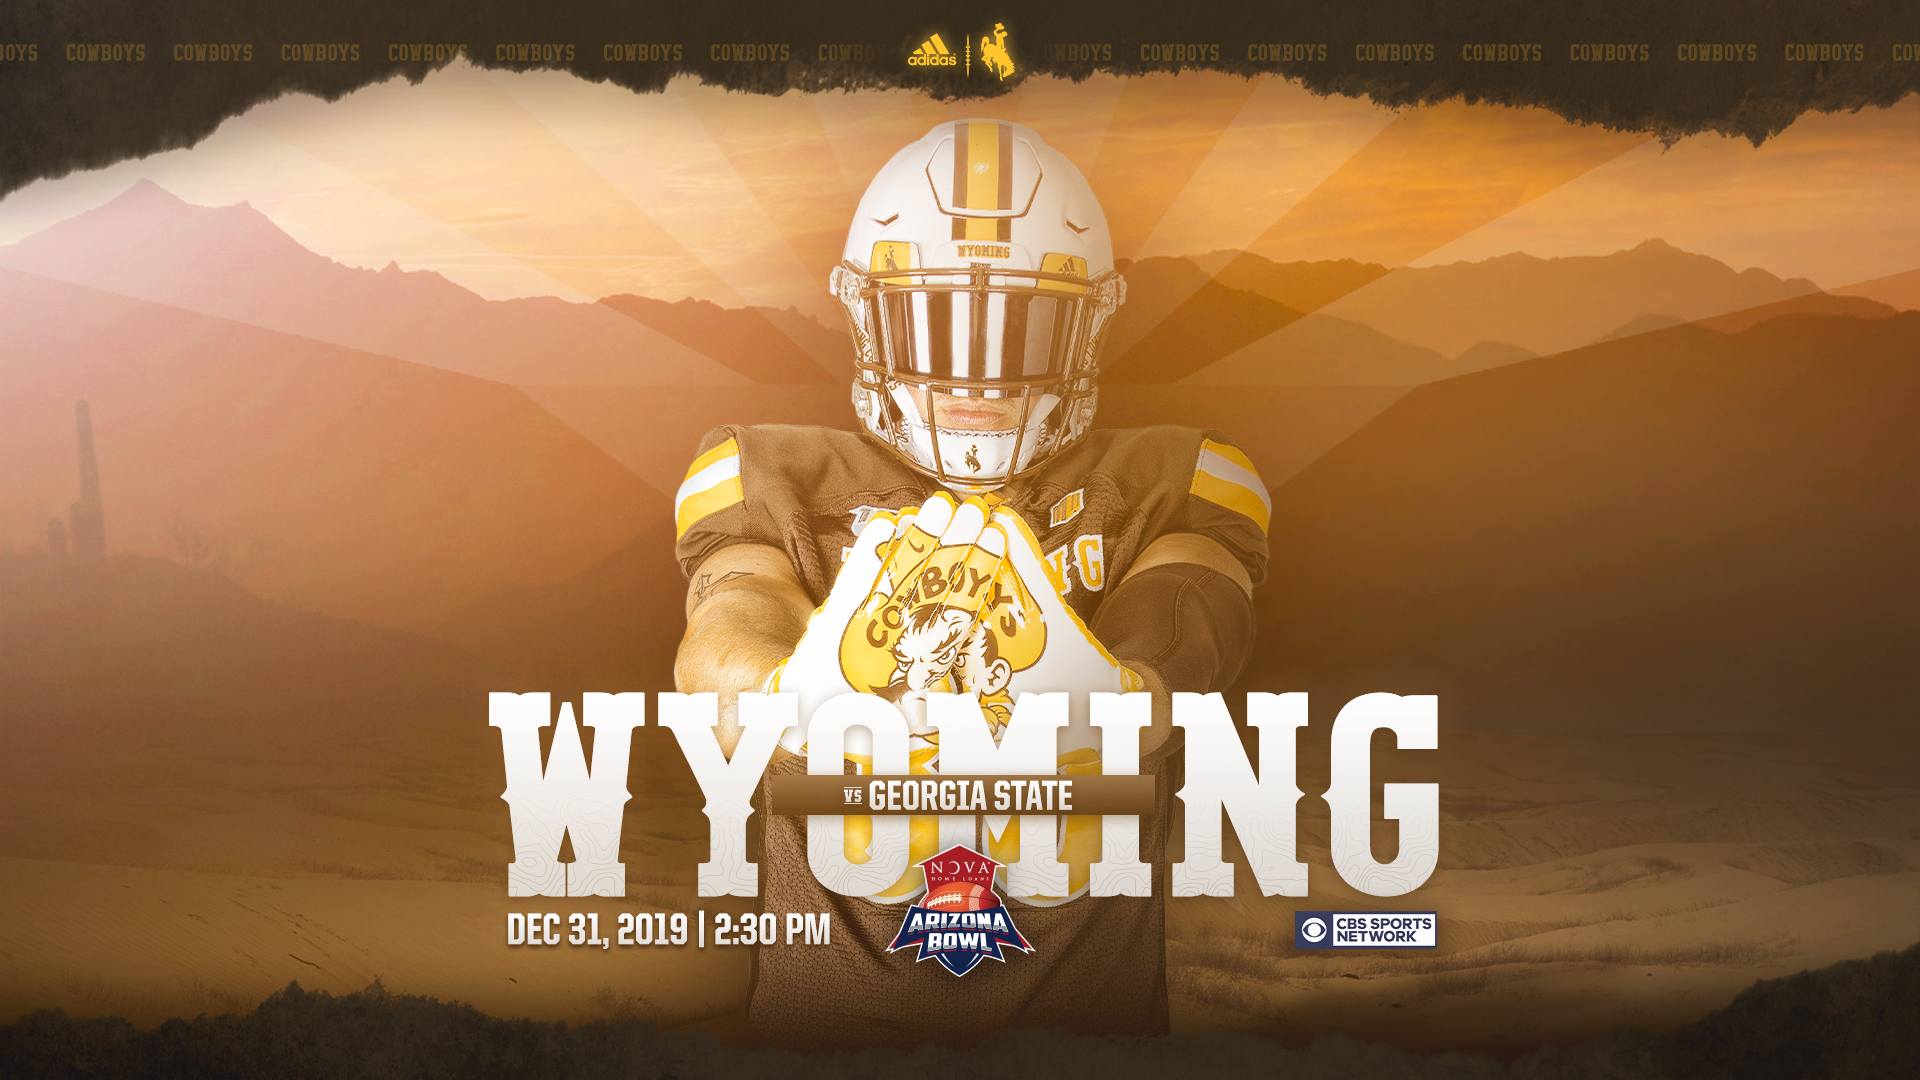 Wyoming Cowboys Invited To Nova Home Loans Arizona Bowl Wyoming Cowboys Cowboys Wyoming